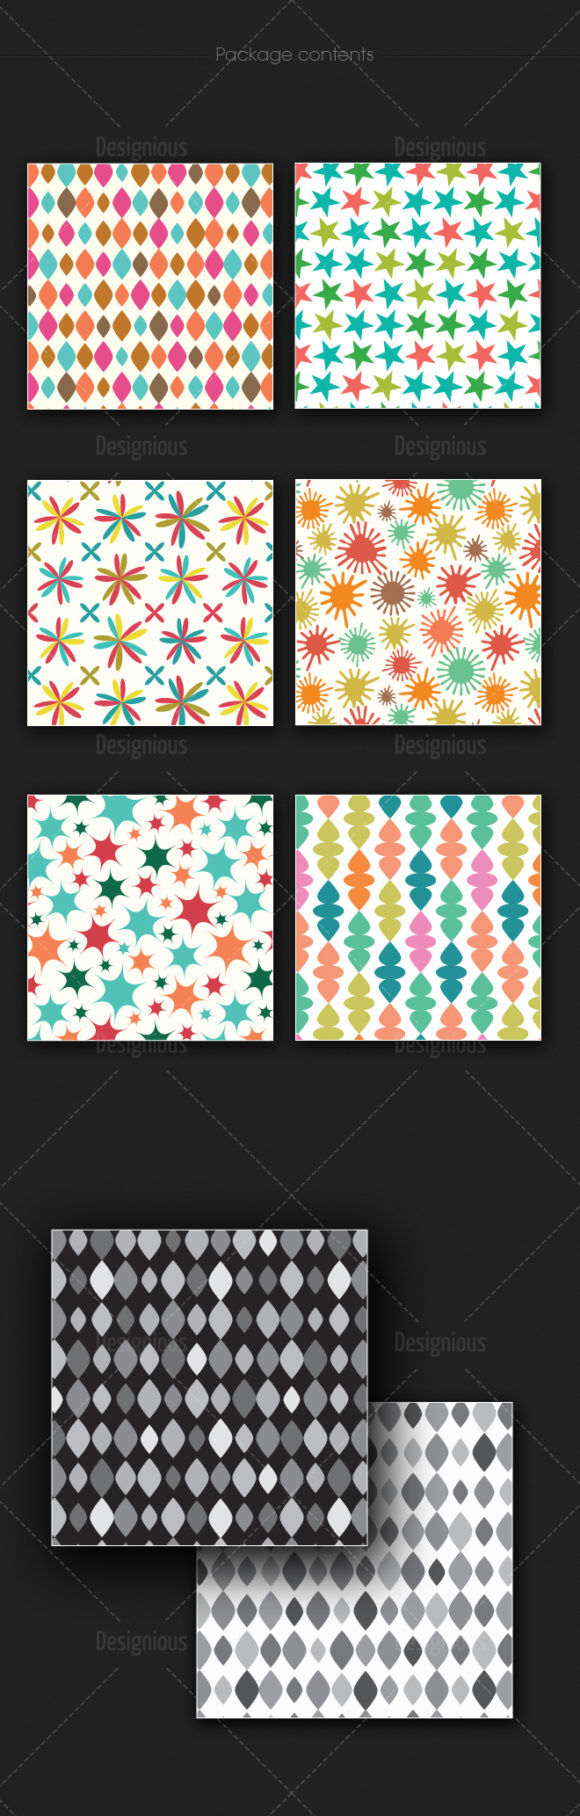 Seamless Patterns Vector Pack 167 Vector Patterns [tag]